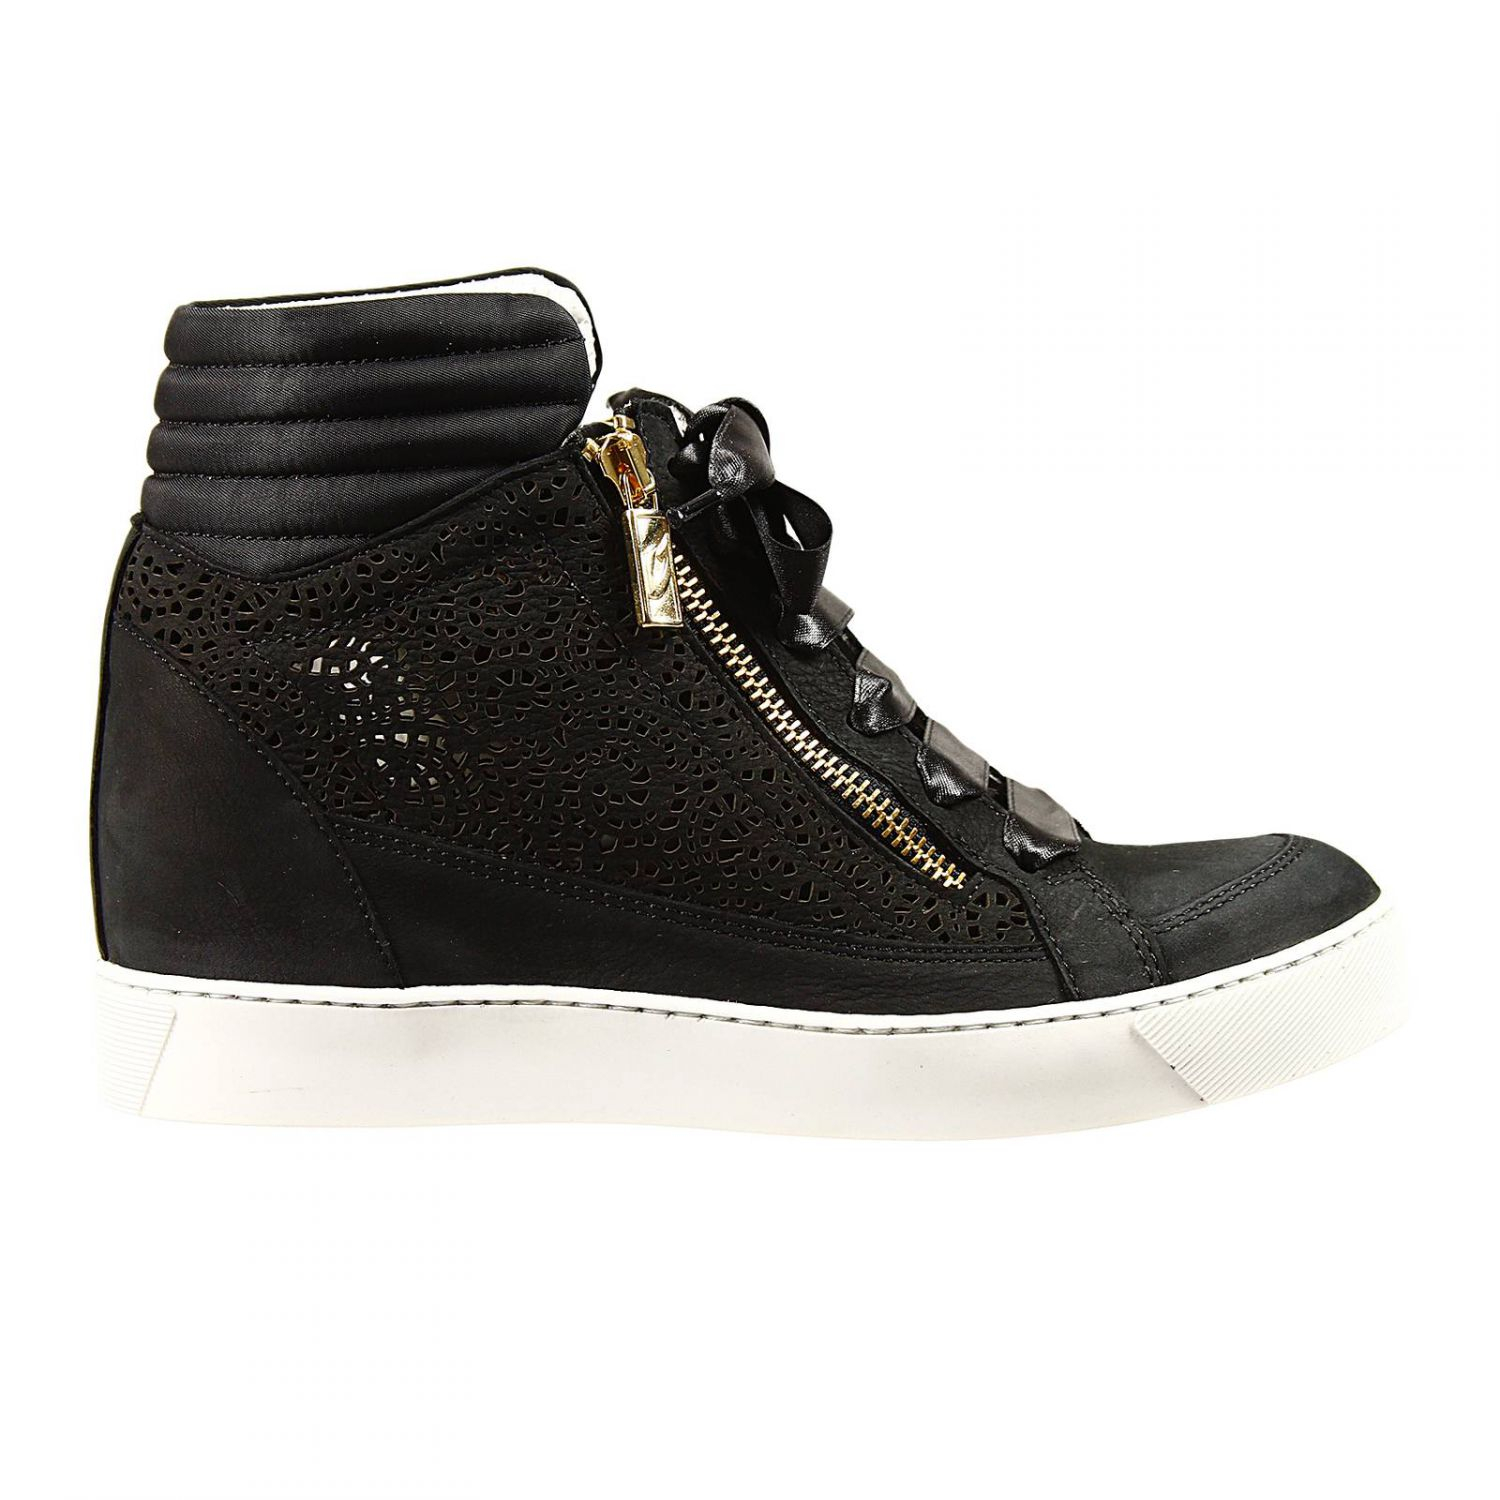 alberto guardiani sneakers shoes empire ankle boots wedge